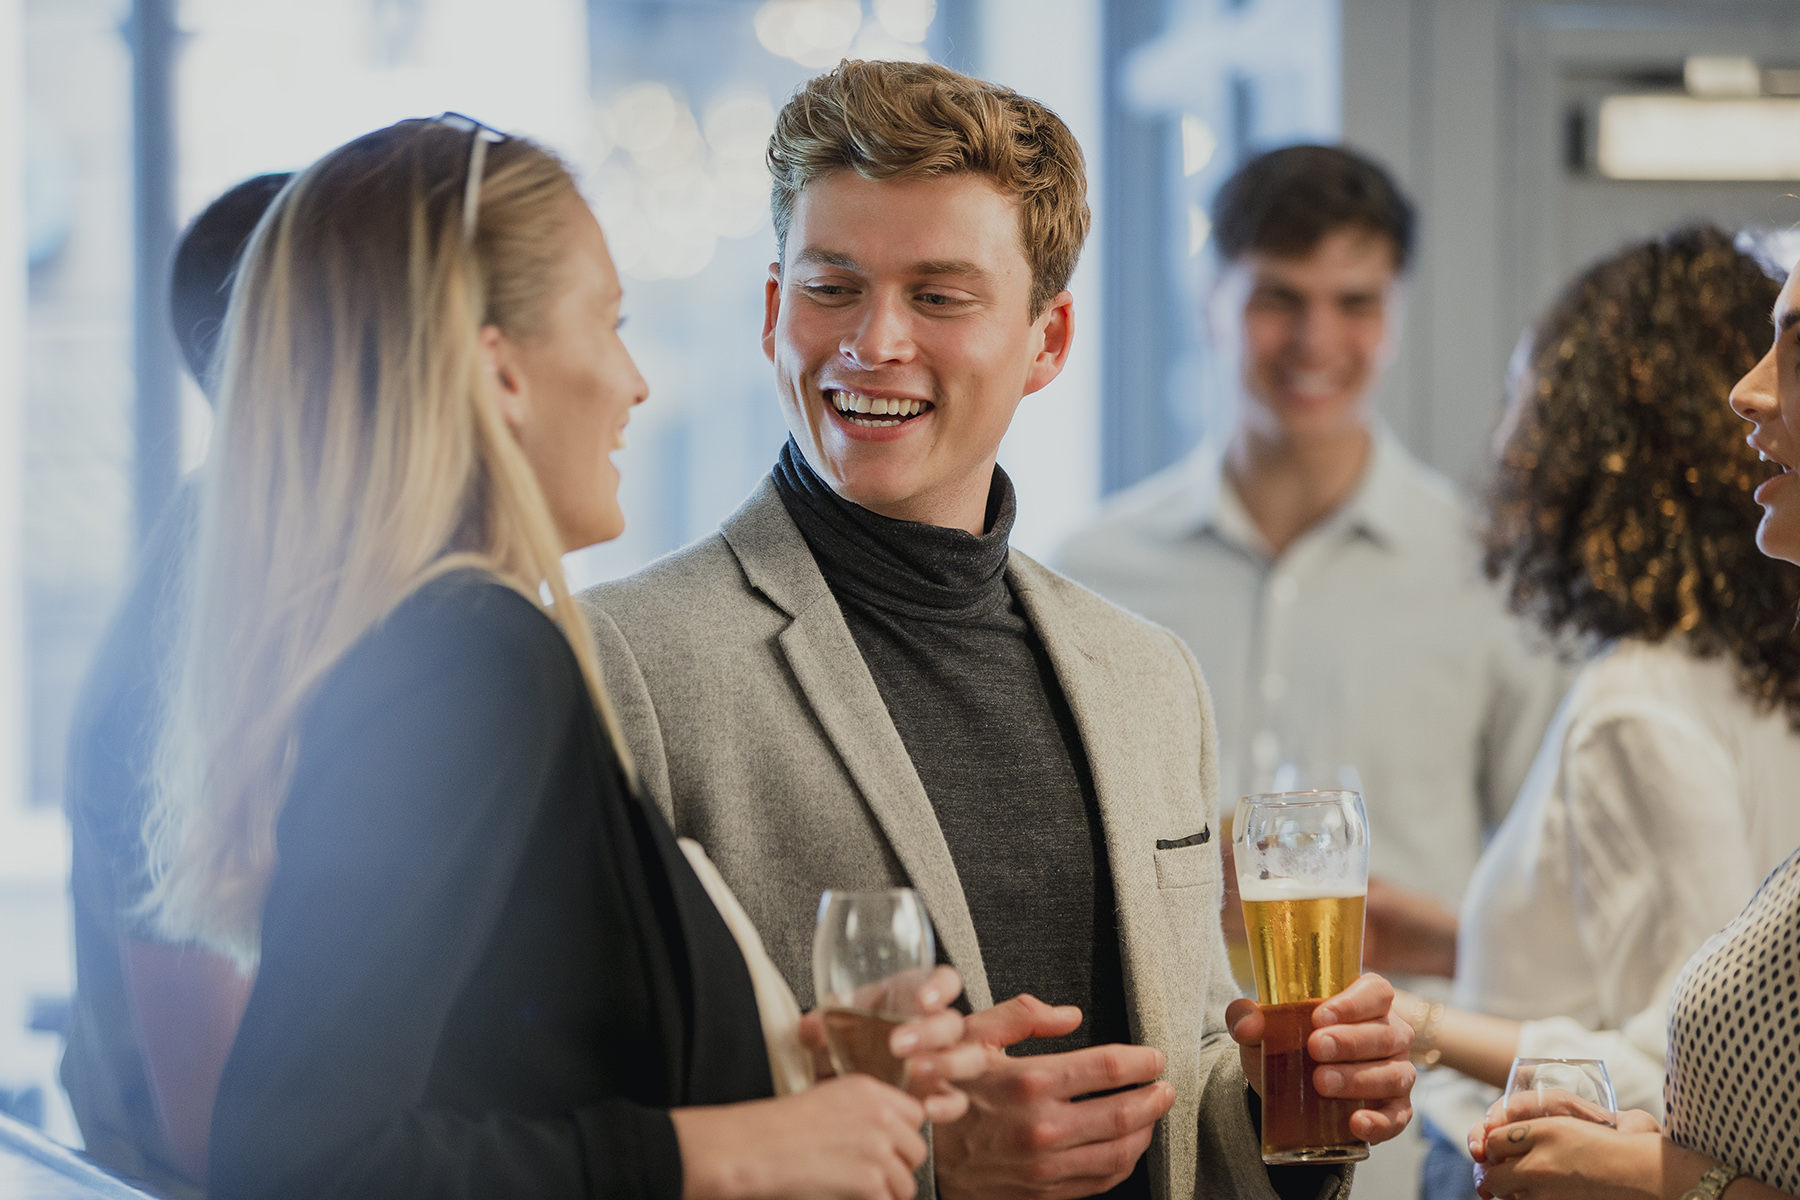 A group networking over drinks